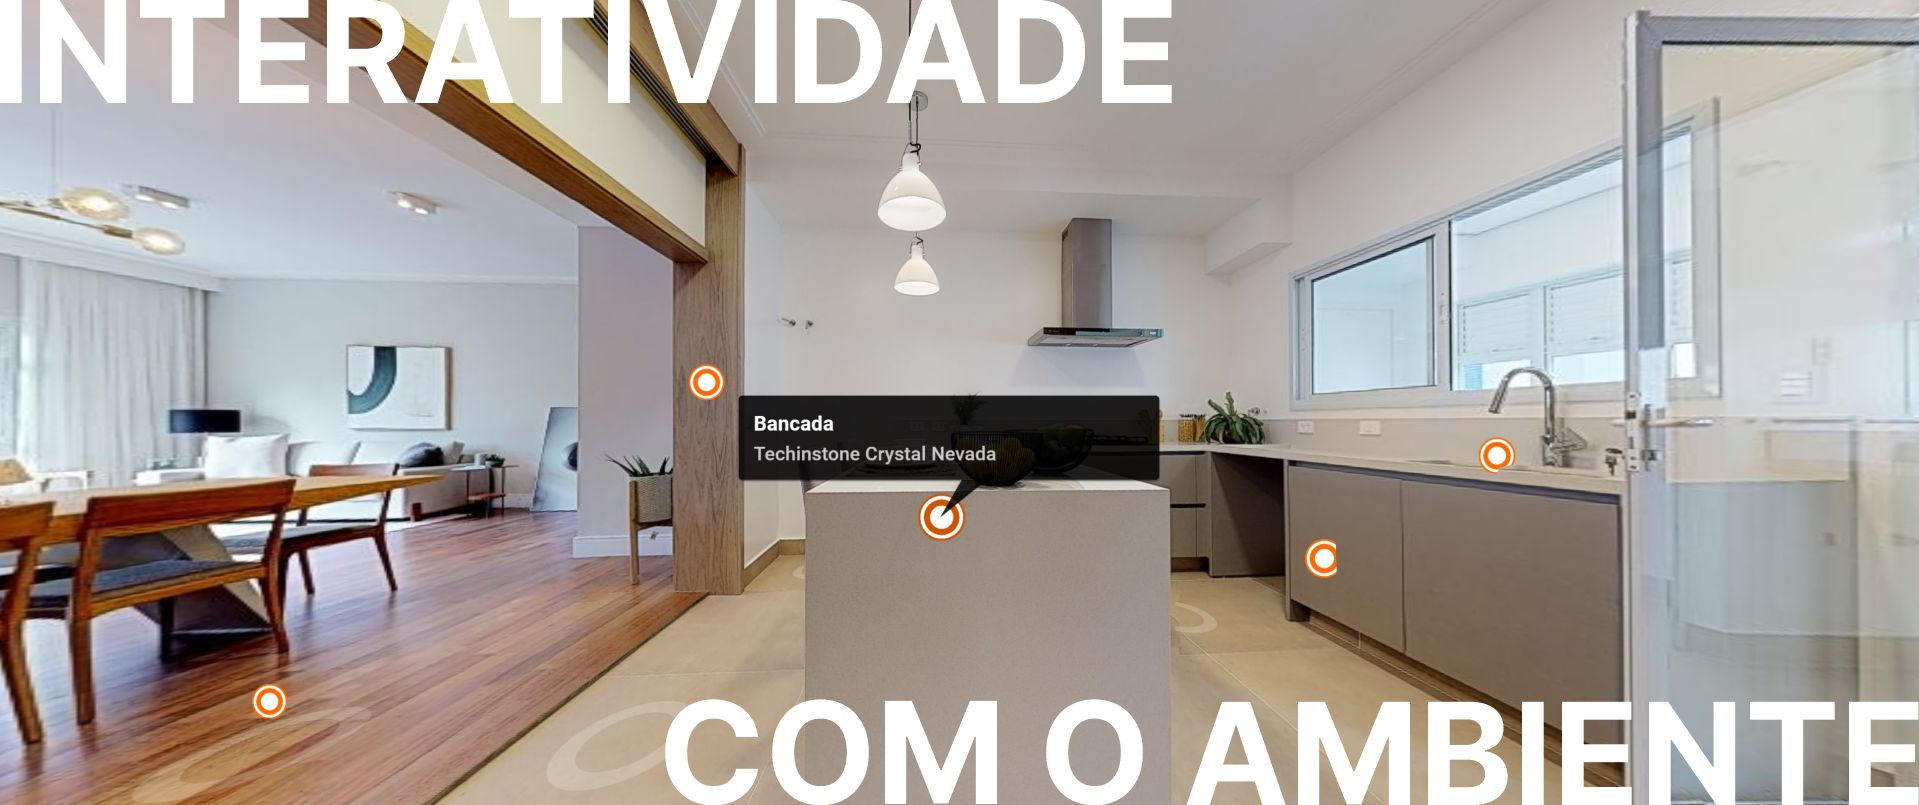 interatividade no tour virtual com video foto e informacao extra